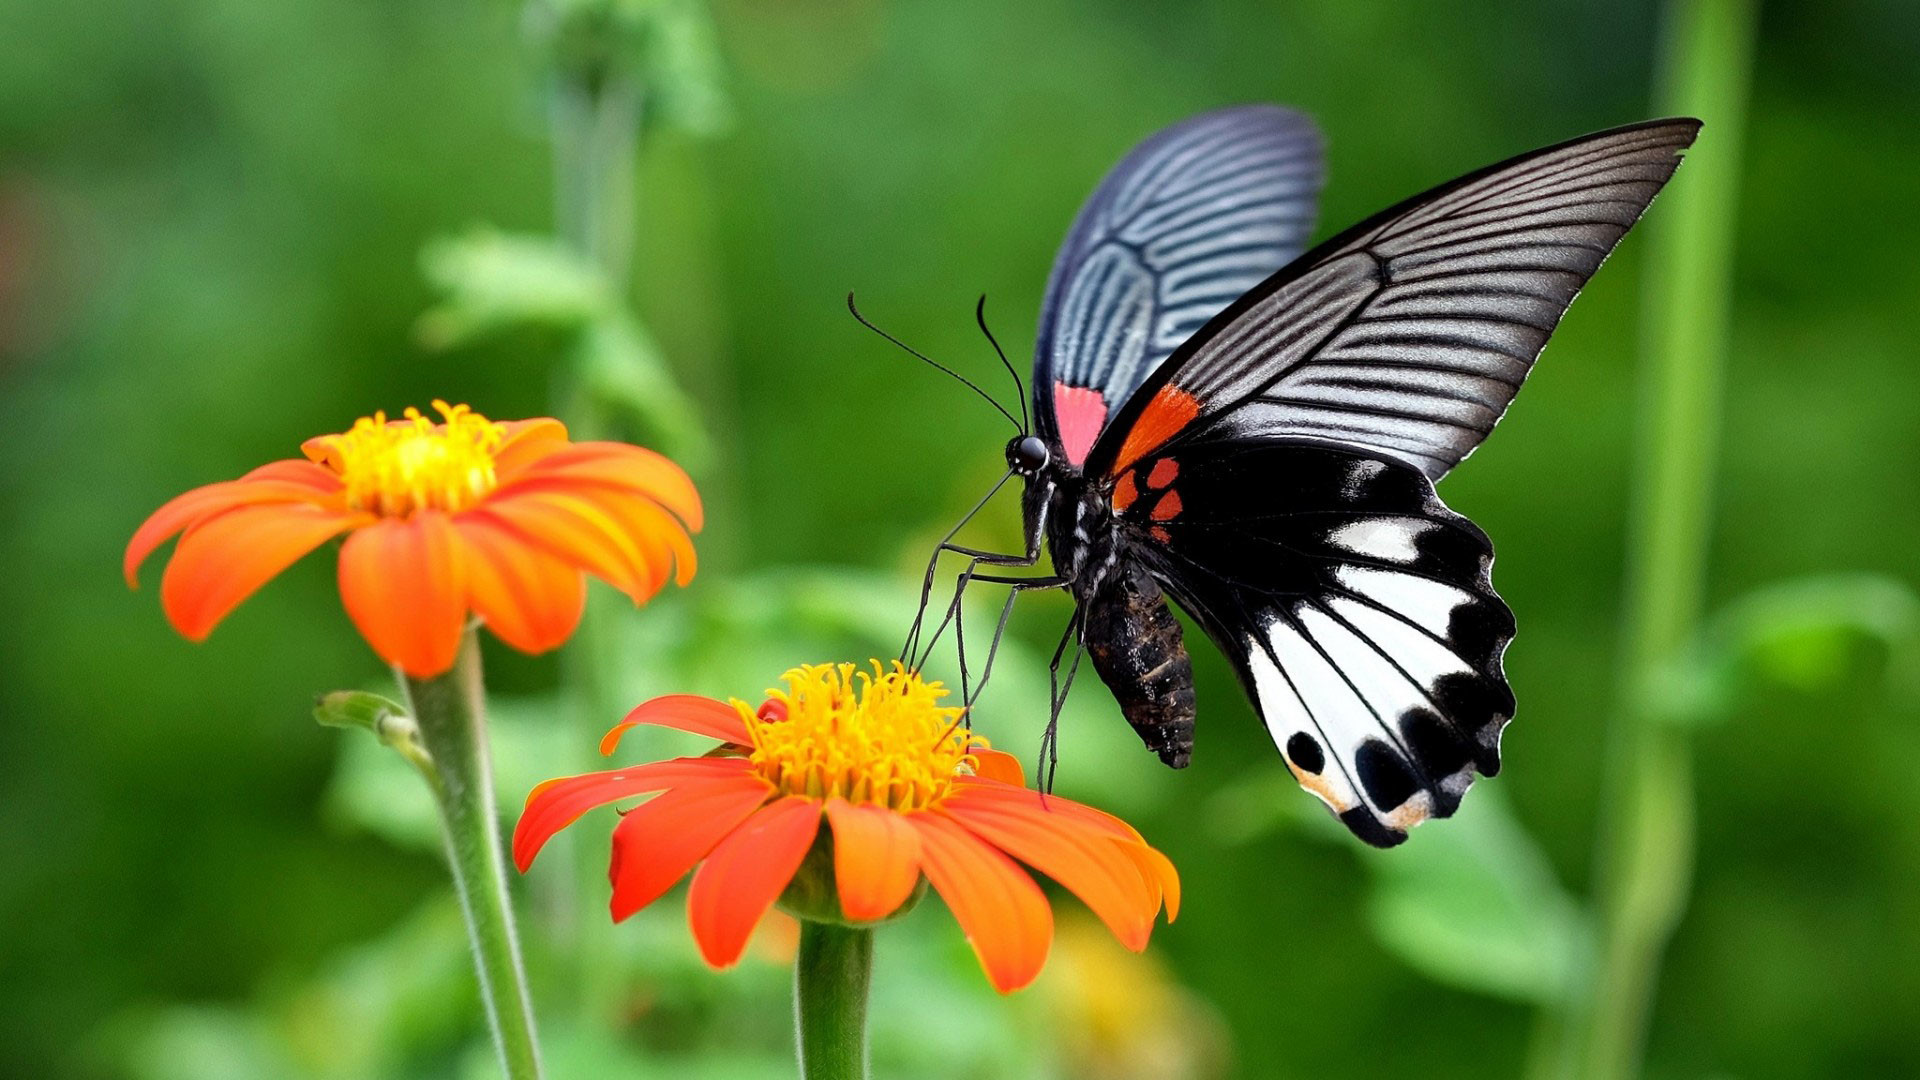 2880x1800 Black Butterfly Desktop Backgrounds Download 2560x1600 HD Wallpaper